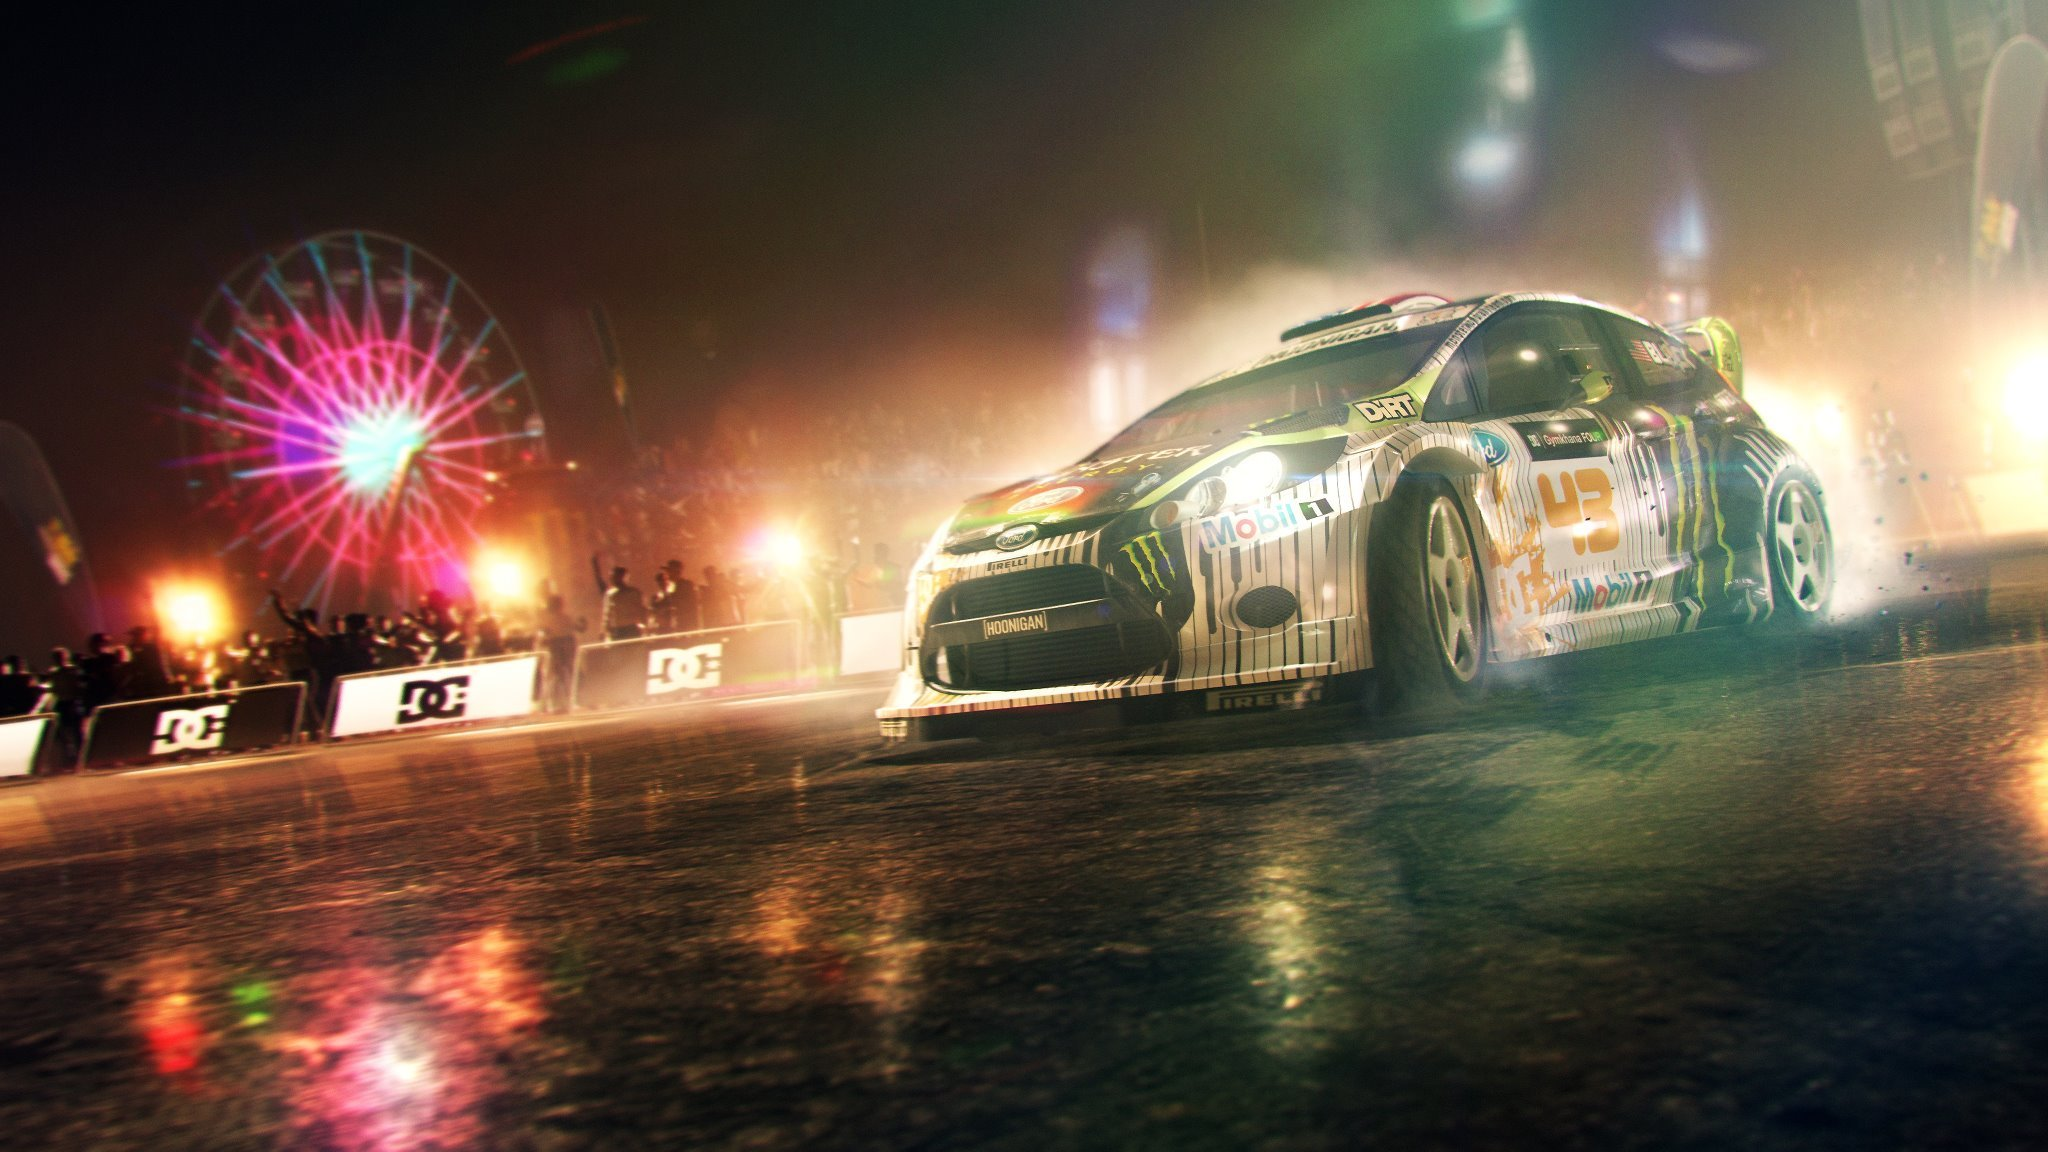 21415 download wallpaper Games, Auto, Races screensavers and pictures for free